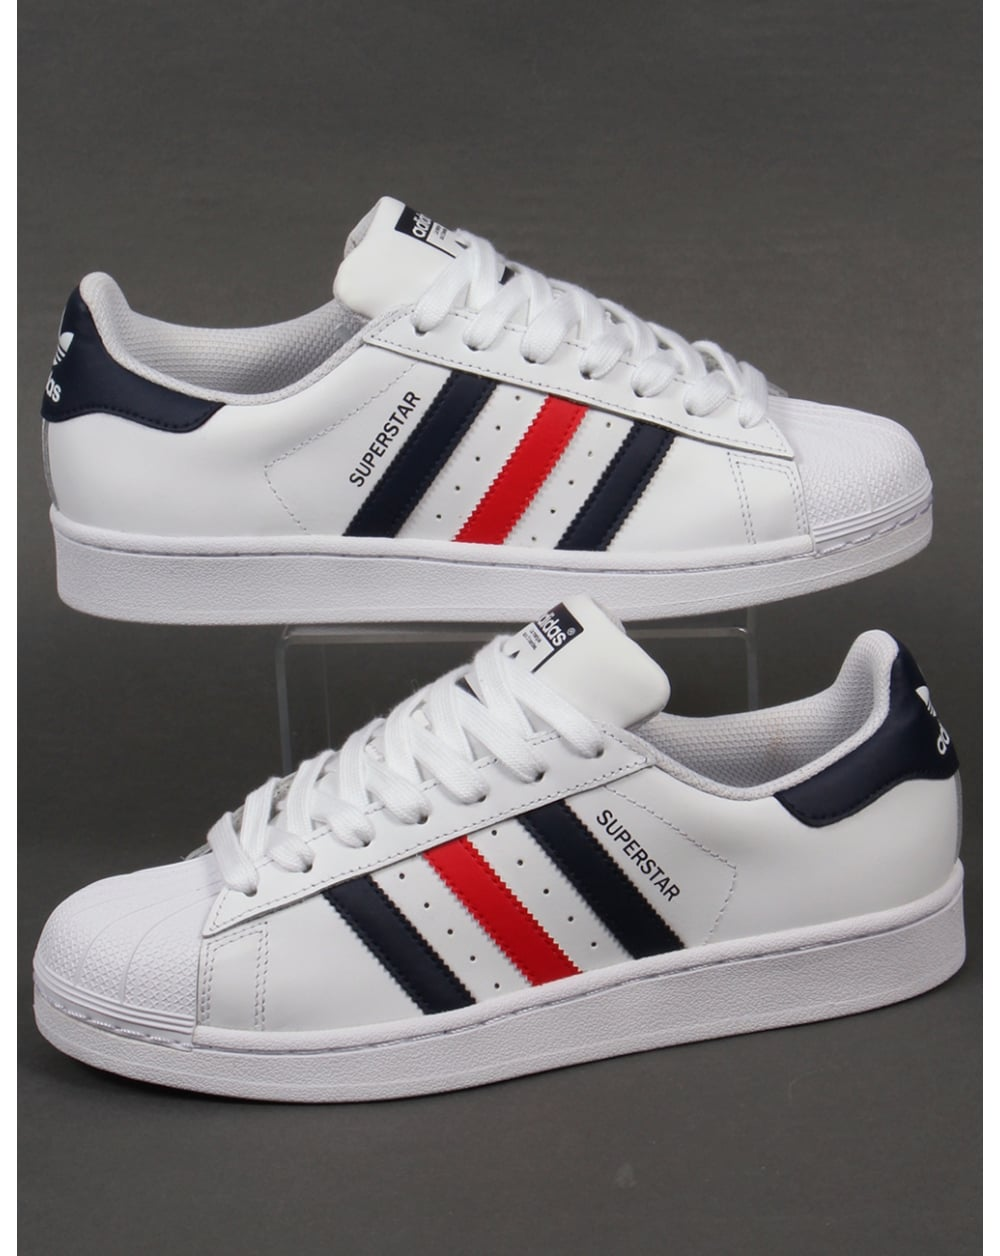 Adidas Superstar White And Navy